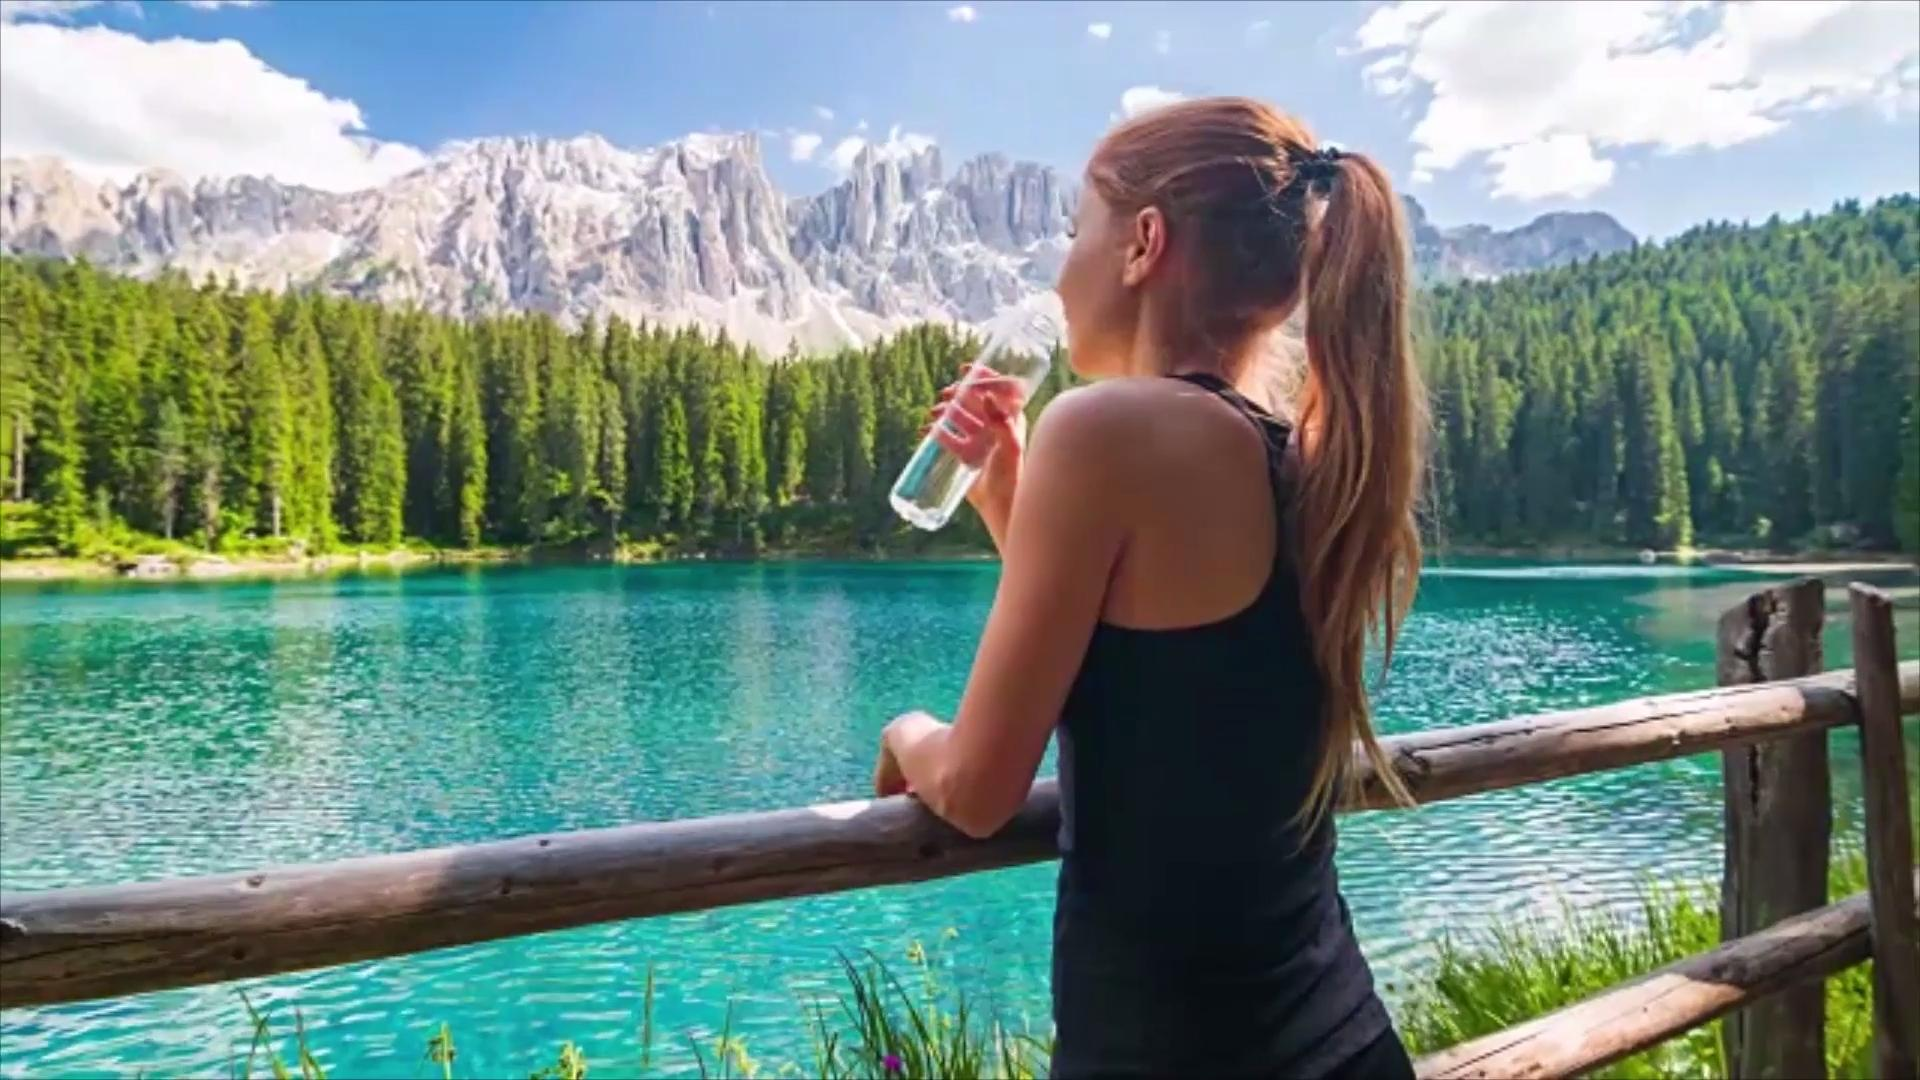 Do You Really Need to Drink 8 Glasses of Water Every Day? - Cooking